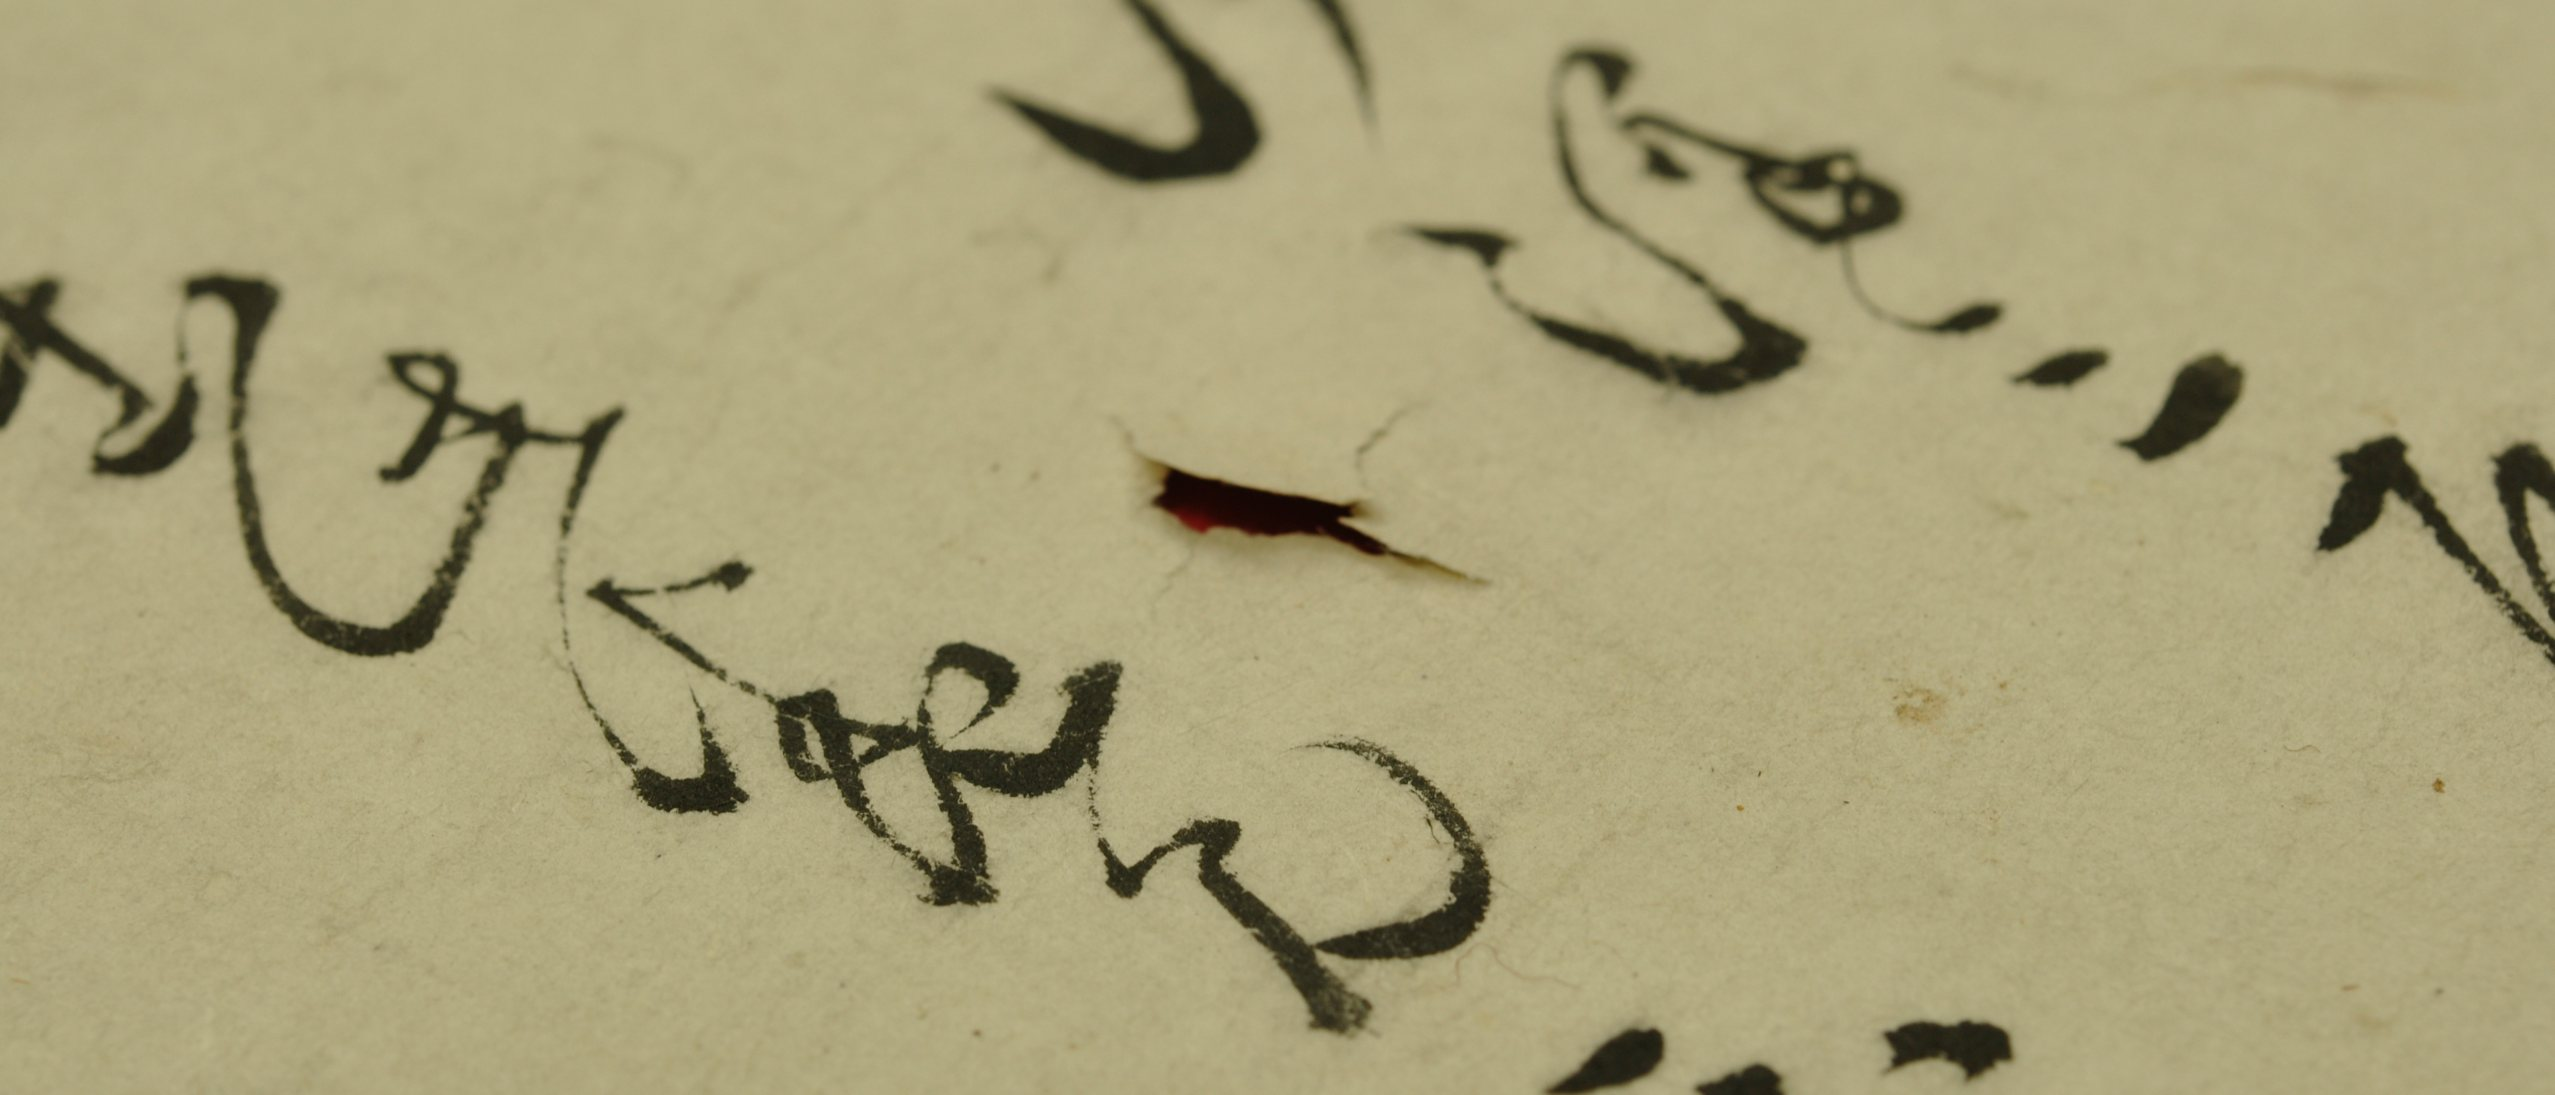 a tear in a work on paper with calligraphic script